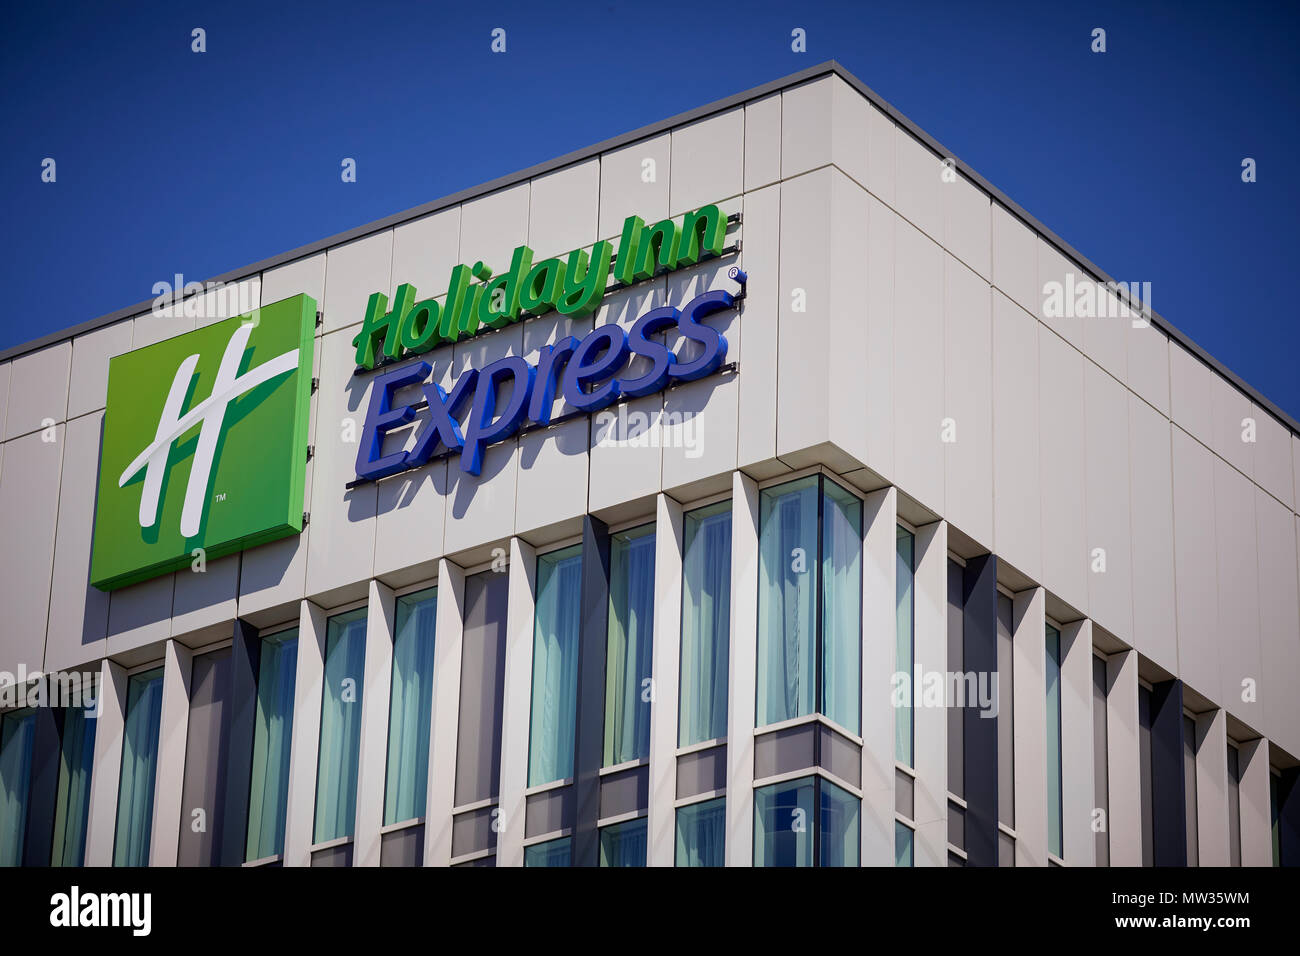 Stockport railway station  Holiday Inn Express originally a U.S. motel chain mid-priced budget hotel chain within the InterContinental Hotels Group - Stock Image